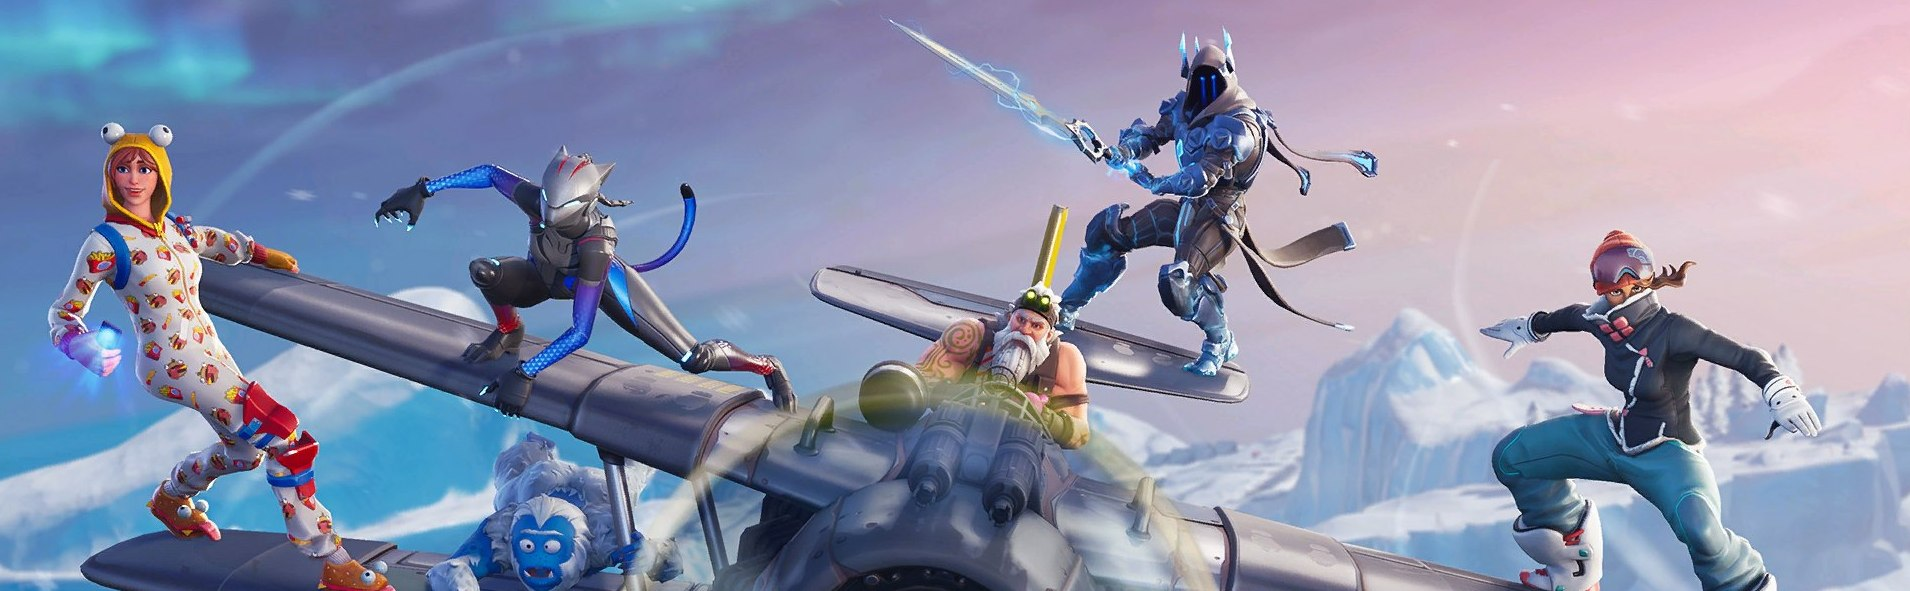 fortnite season 7 guide weekly challenges character skins and battle pass details usgamer - update on fortnite season 7